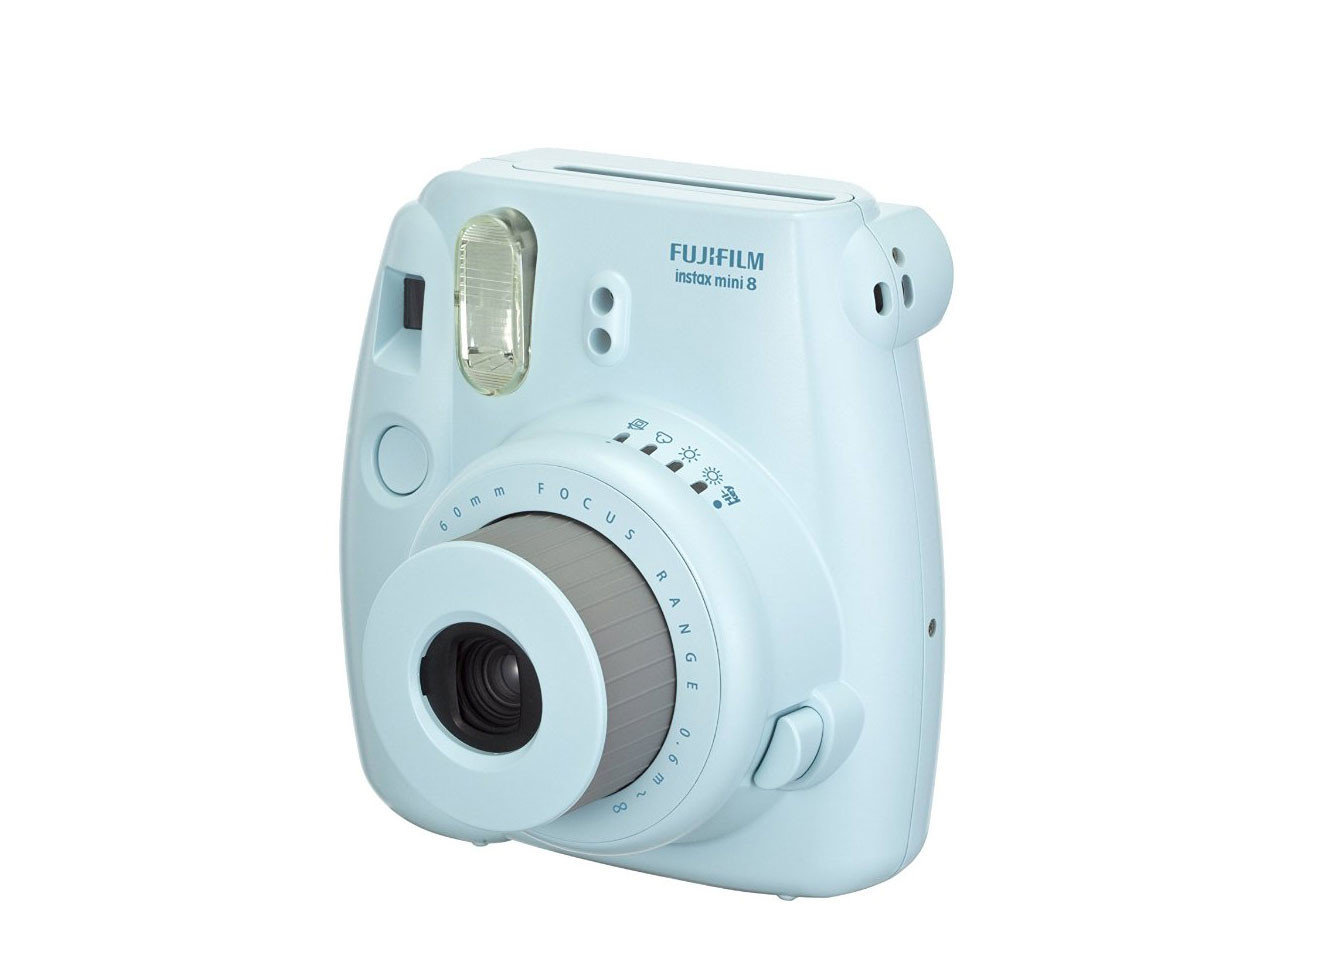 Style + Design camera digital camera cameras & optics product instant camera